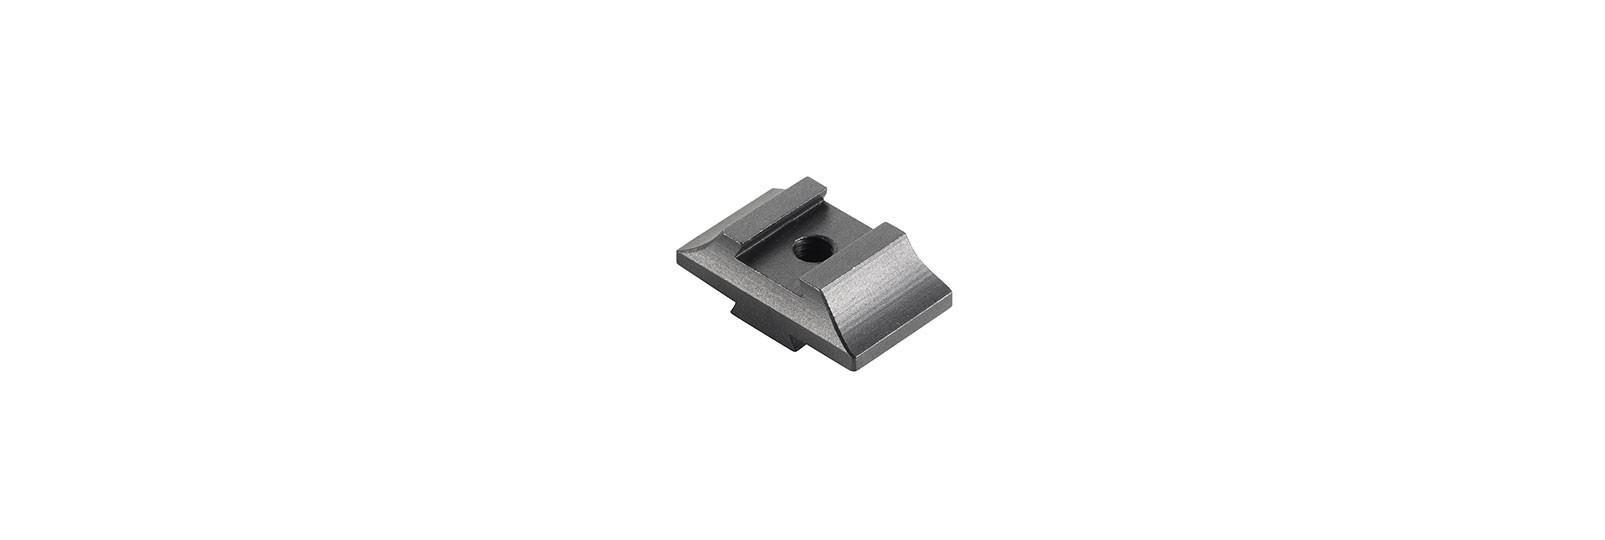 Tunnel front sight base support